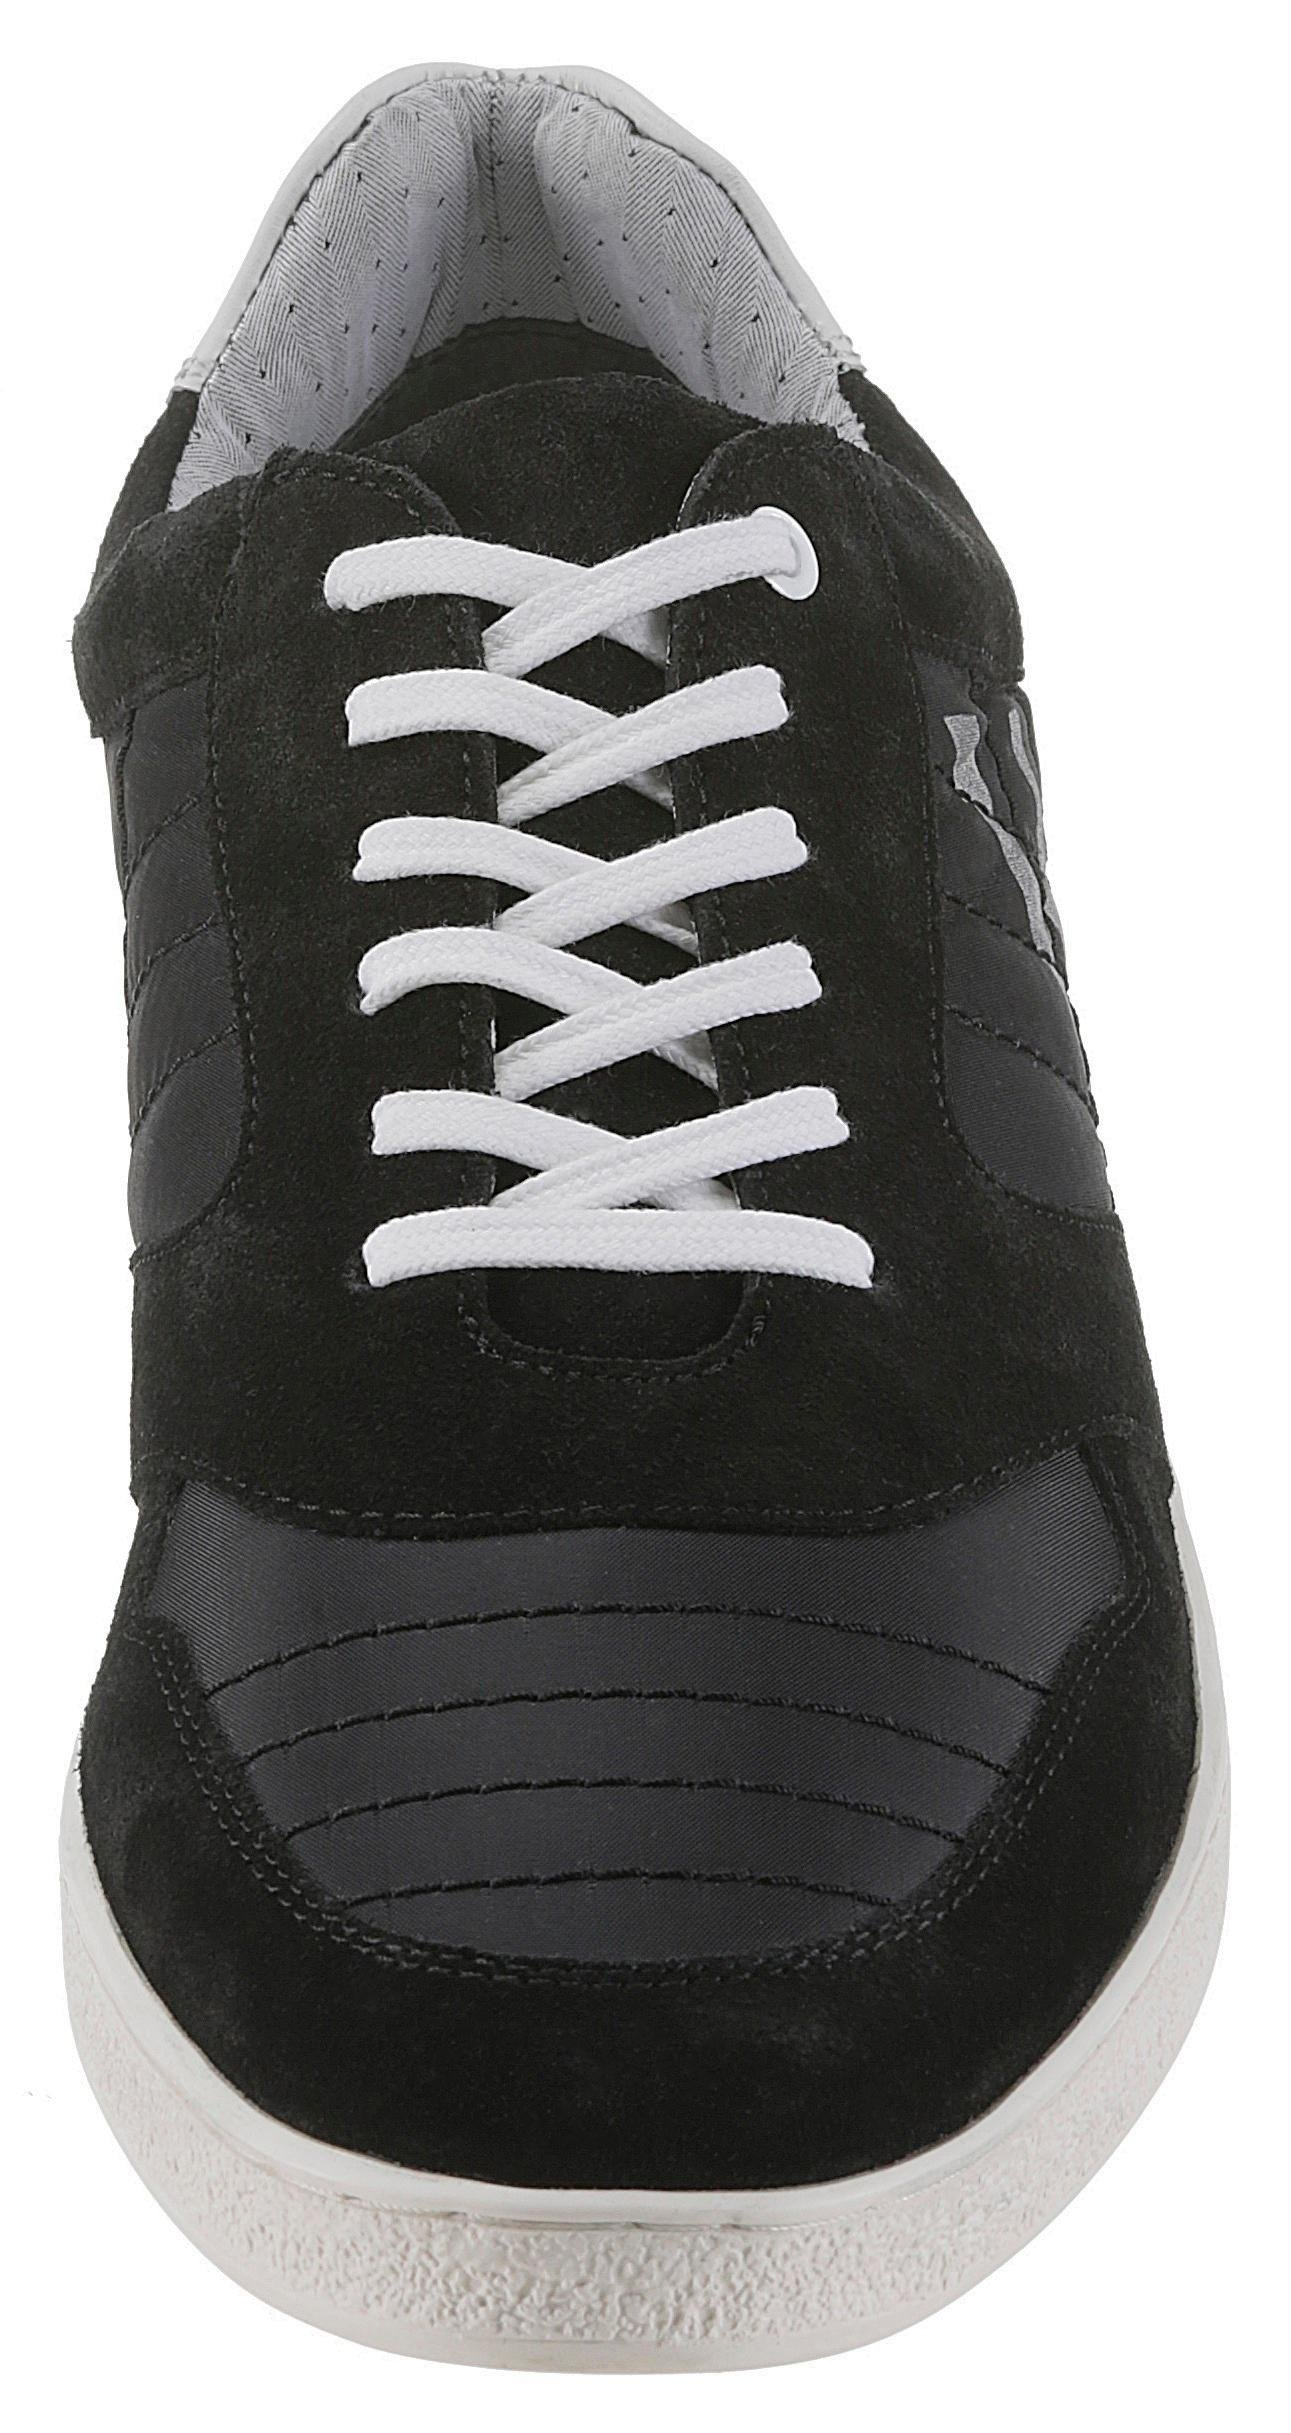 Shop Banani In Sneakers Bruno De Online uiXwkOPZTl